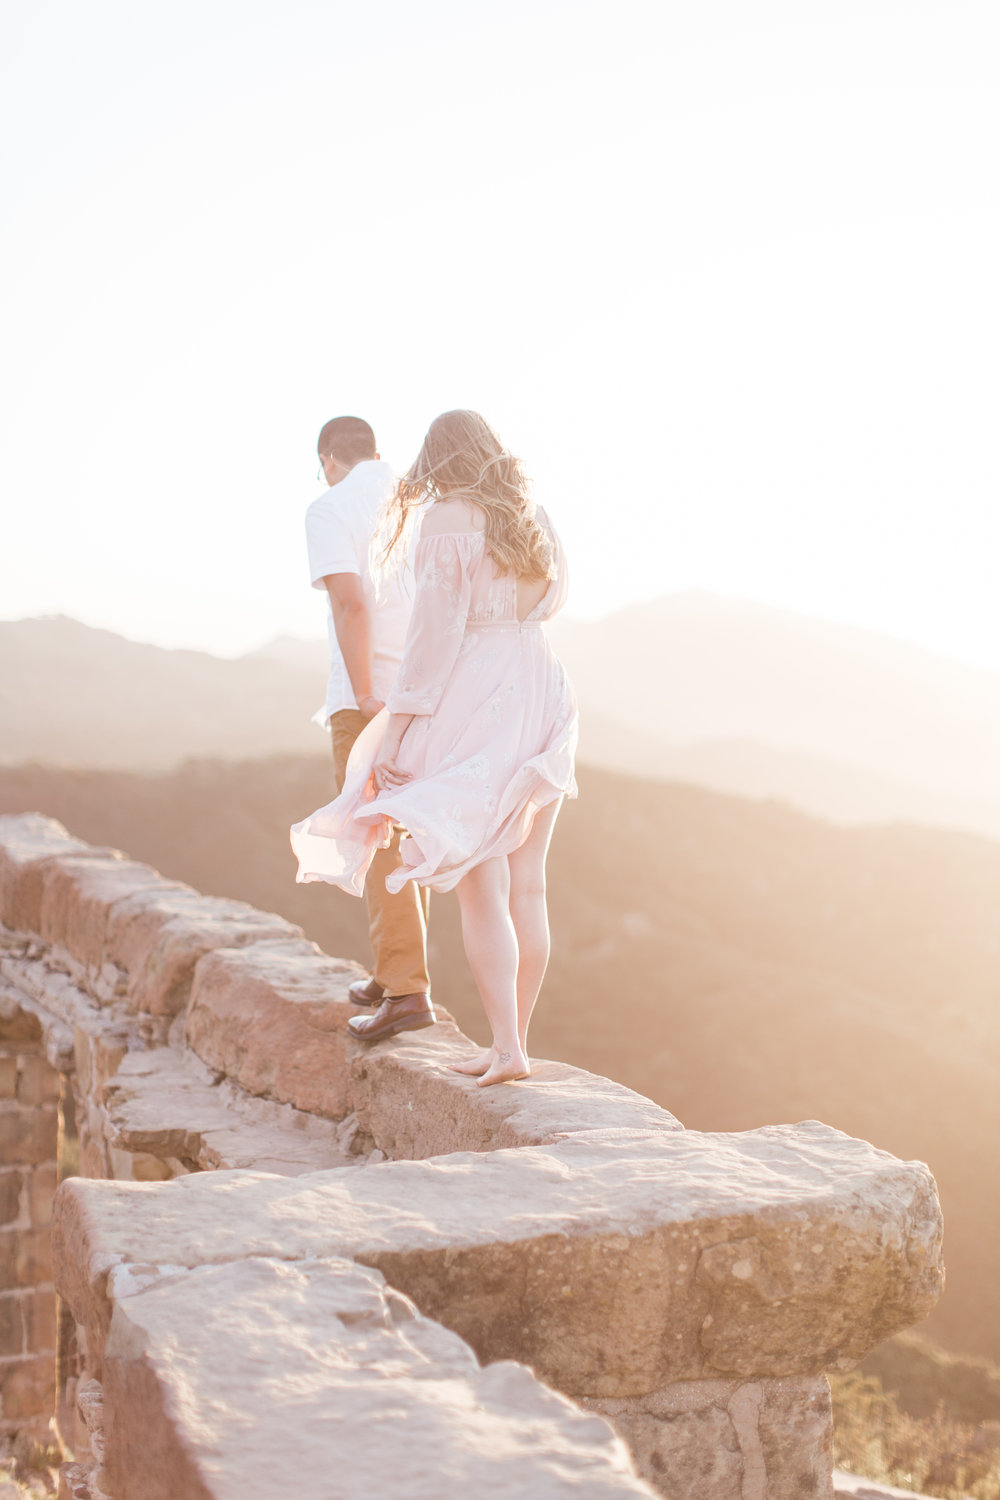 Santa Barbara Mountains Engagement Photos - The Overwhelmed Bride Wedding Blog